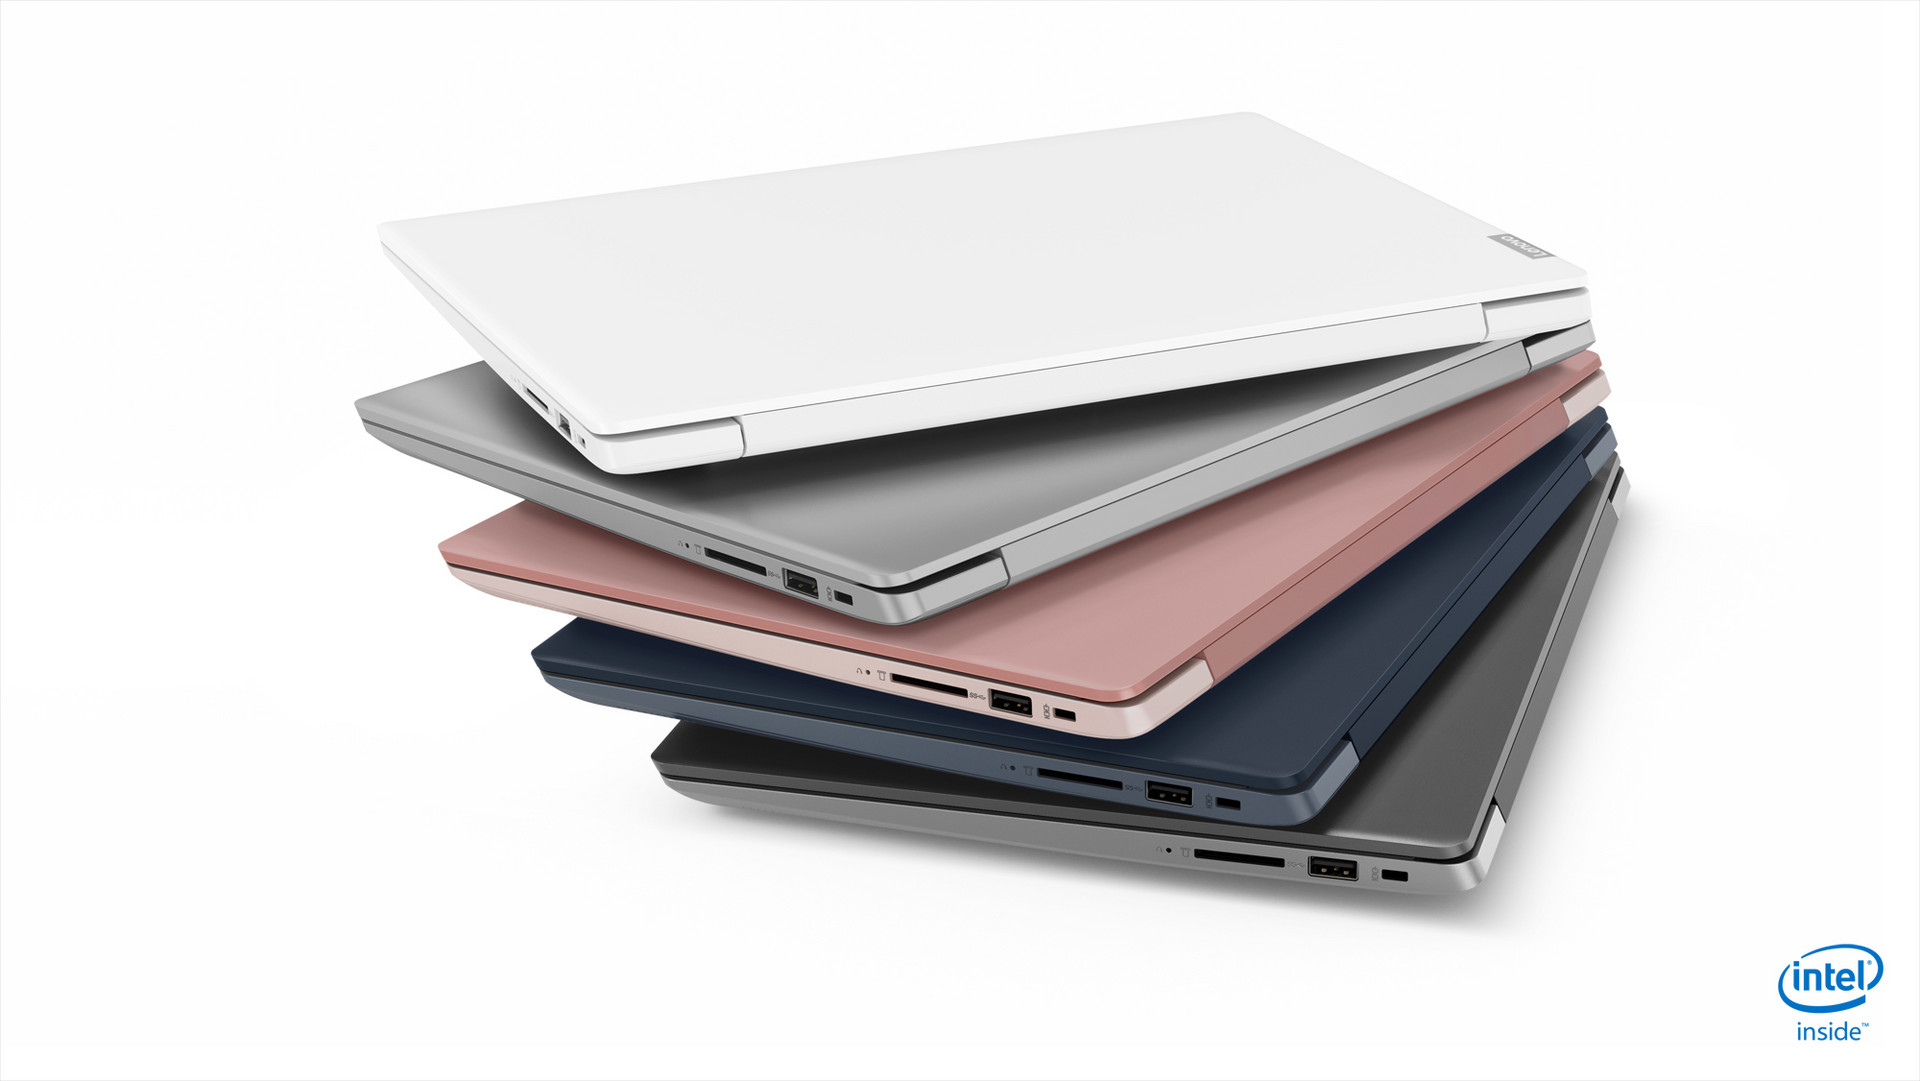 The Lenovo IdeaPad 330 and 330S cover the budget and mid